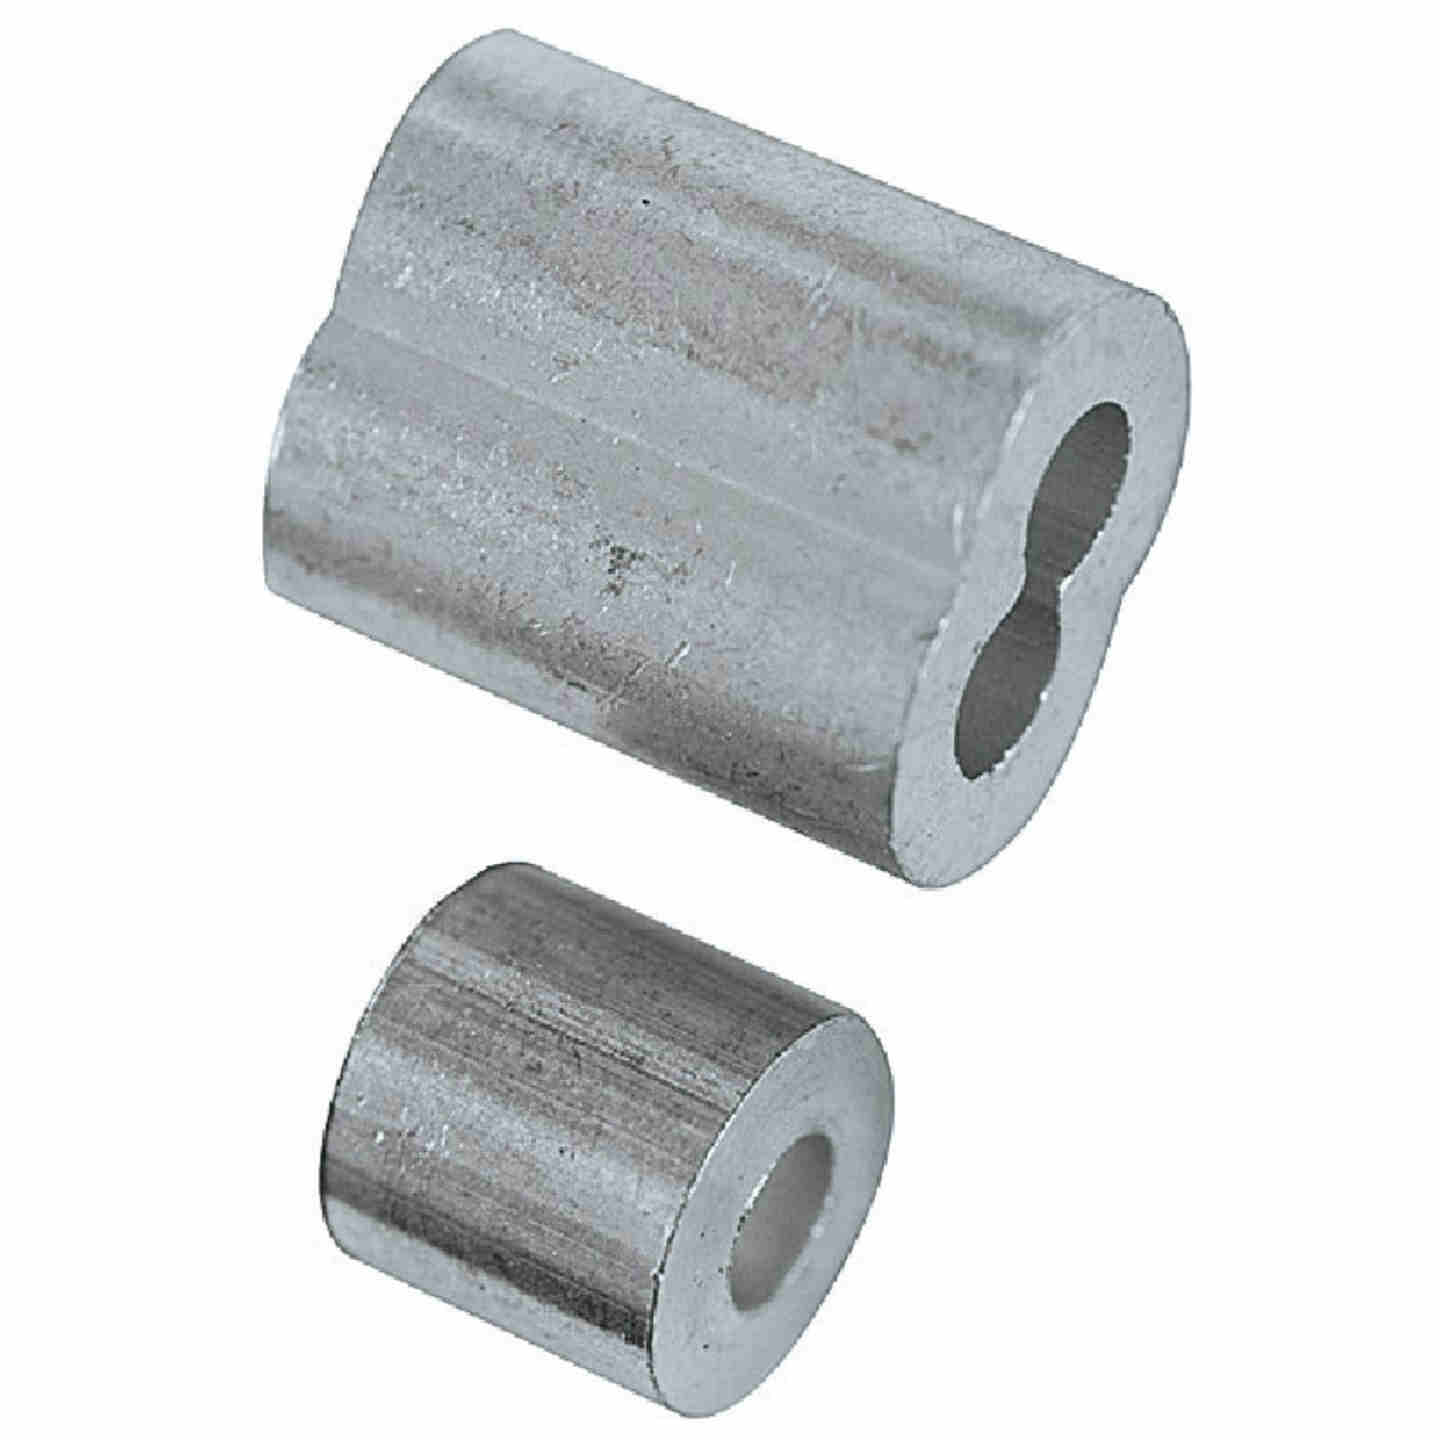 """Prime-Line Cable Ferrules and Stops, 1/8"""", Aluminum Image 2"""